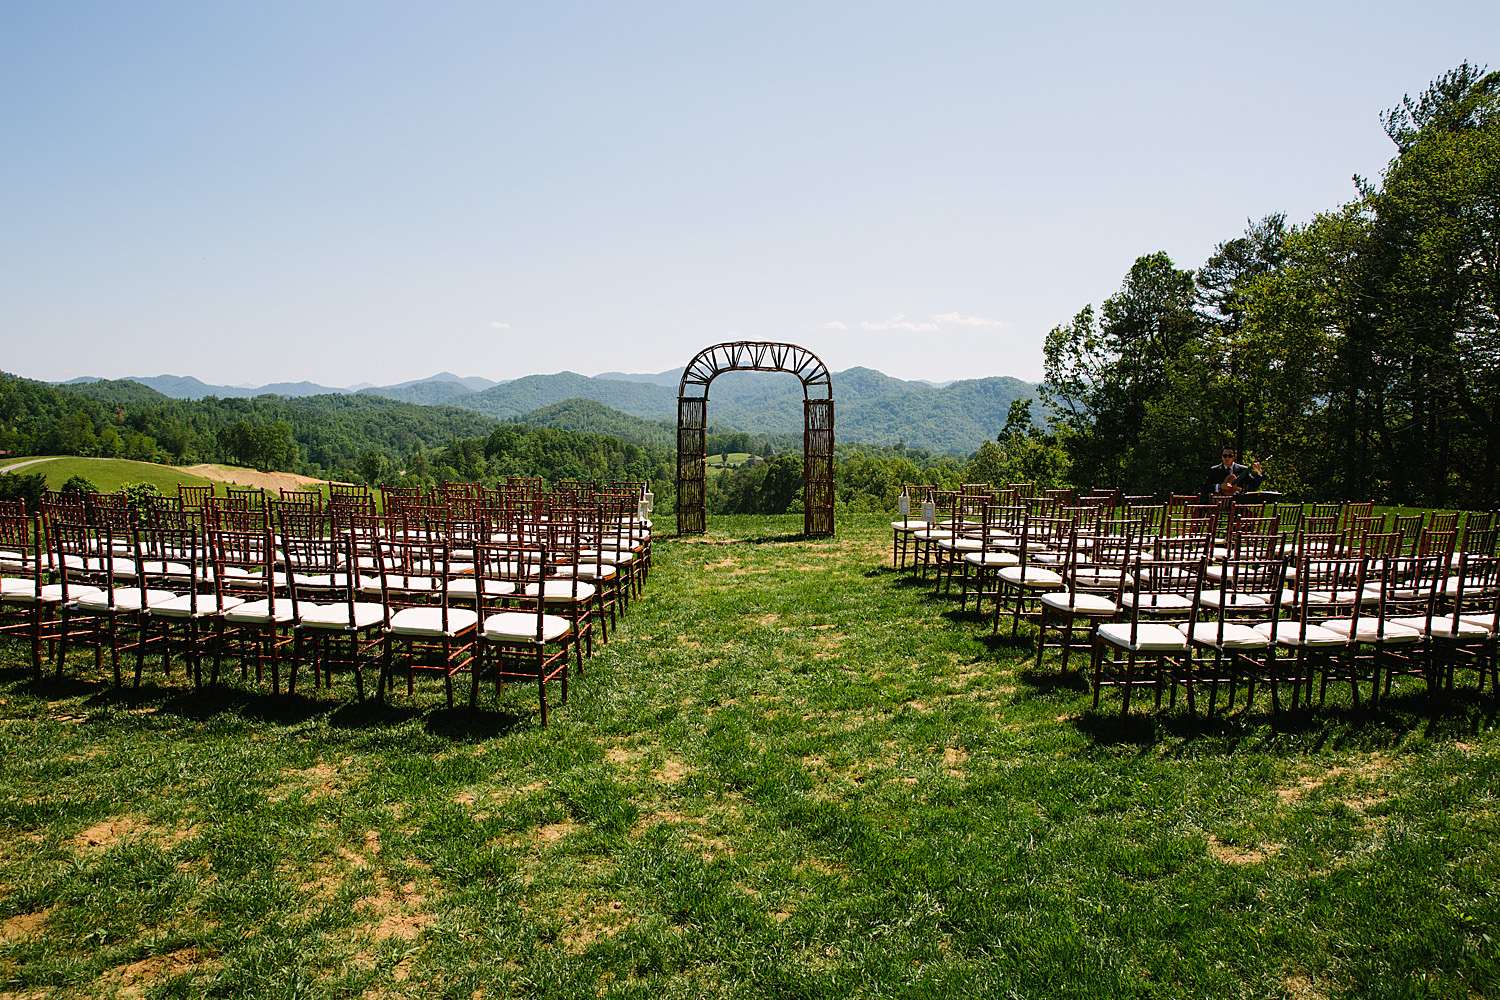 Jeremy-Russell-Asheville-The-Ridge-Wedding-1705-39.jpg